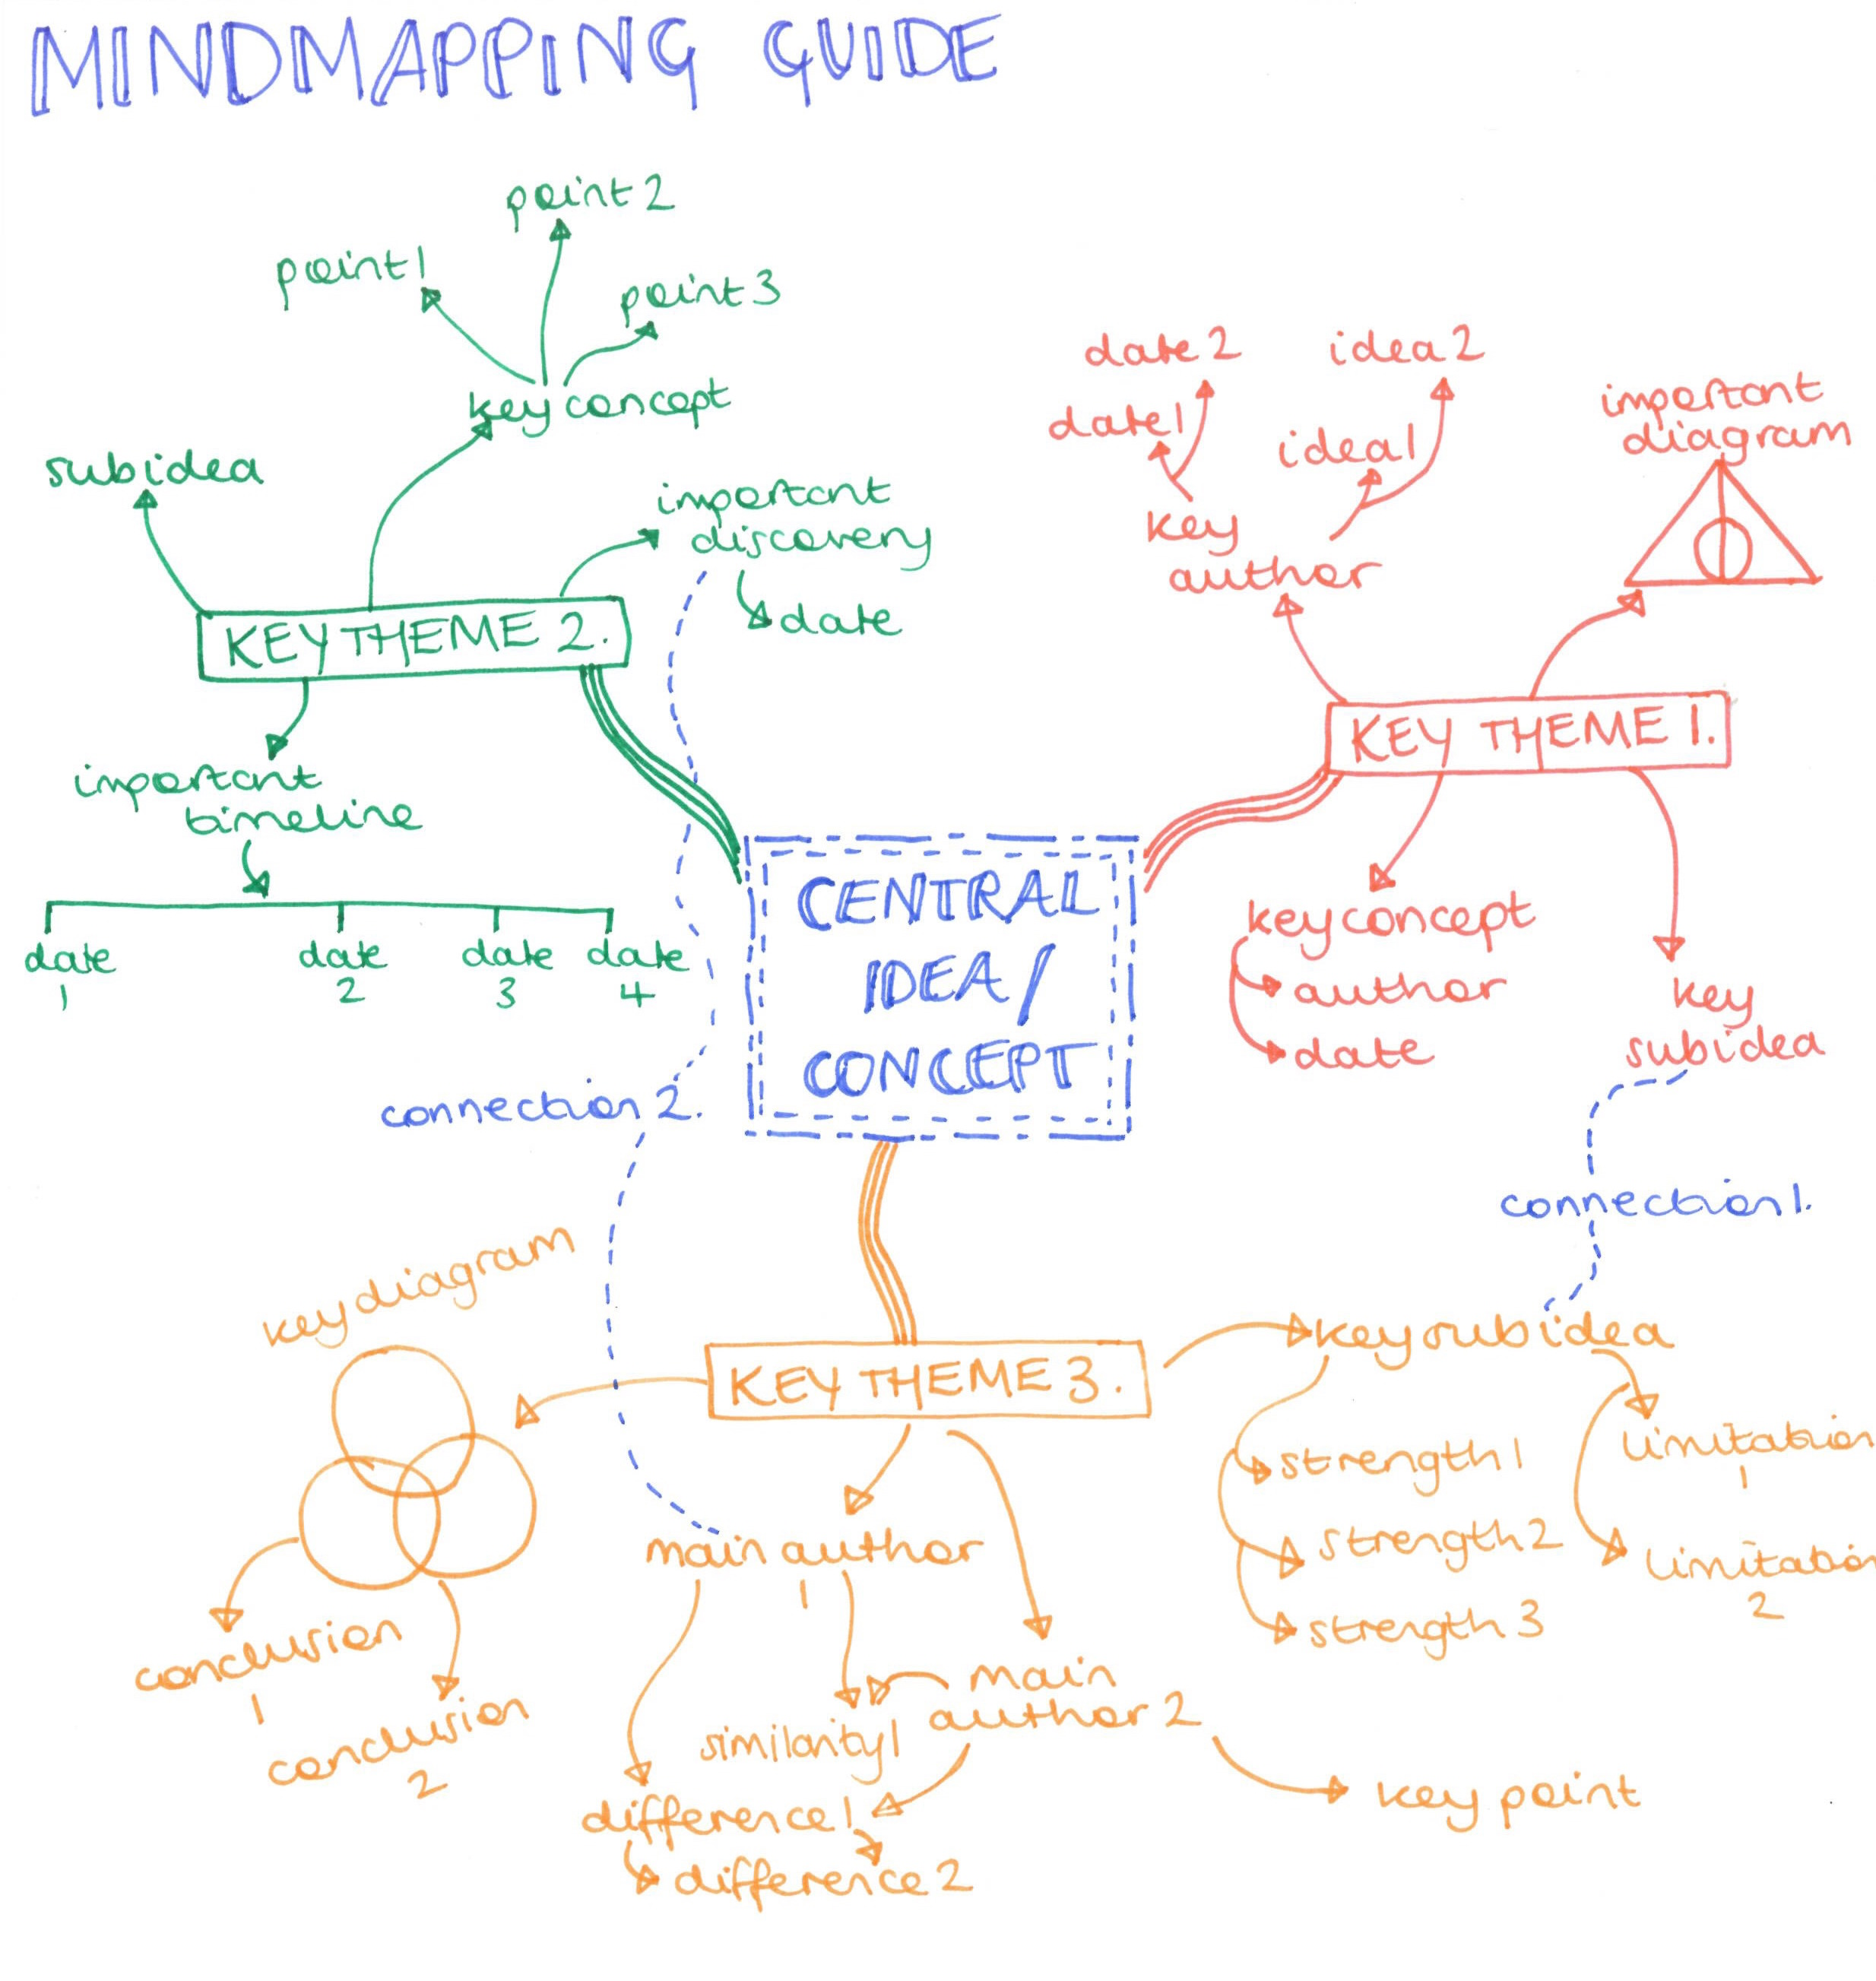 Use mind mapping when learning how to study effectively.